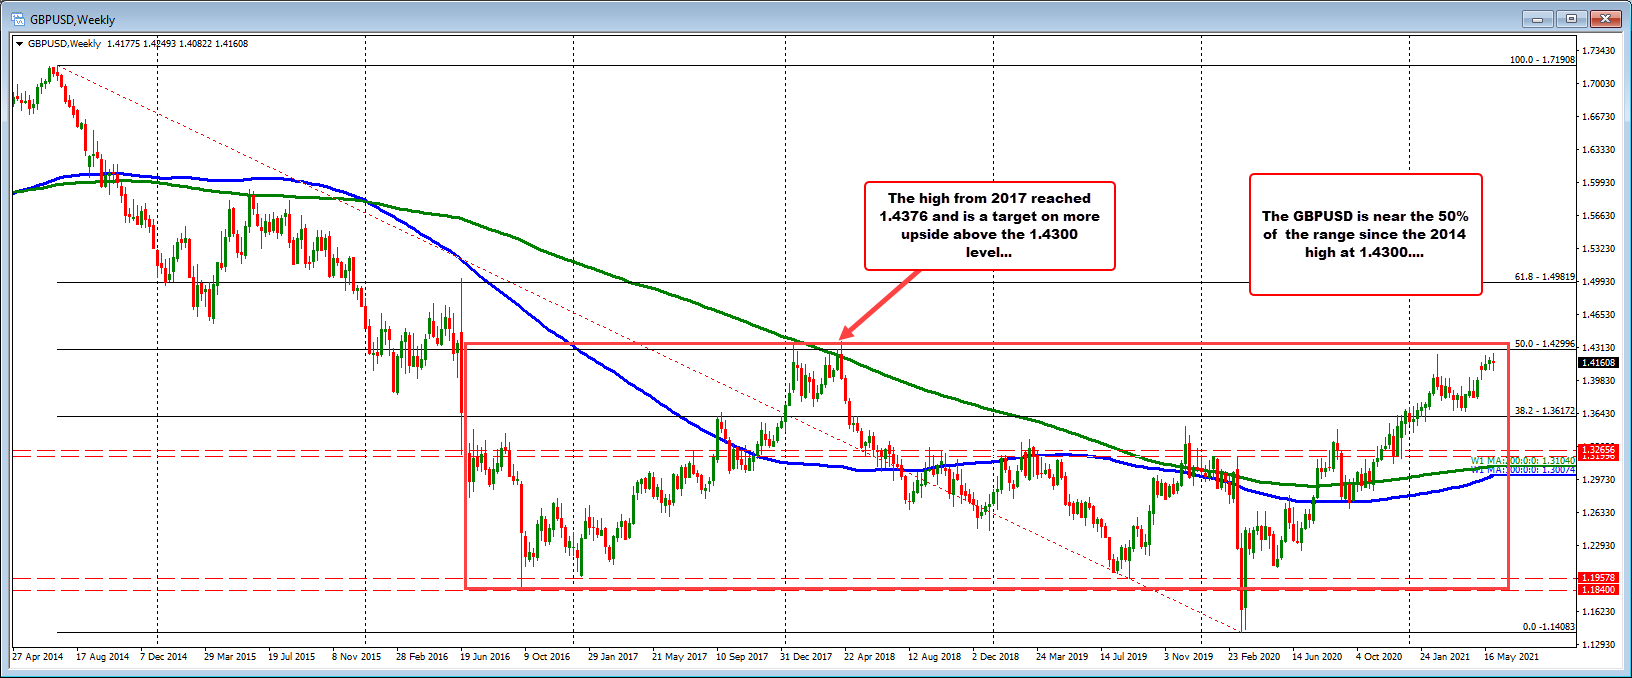 GBPUSD is near the 50% retracement of the range since 2014